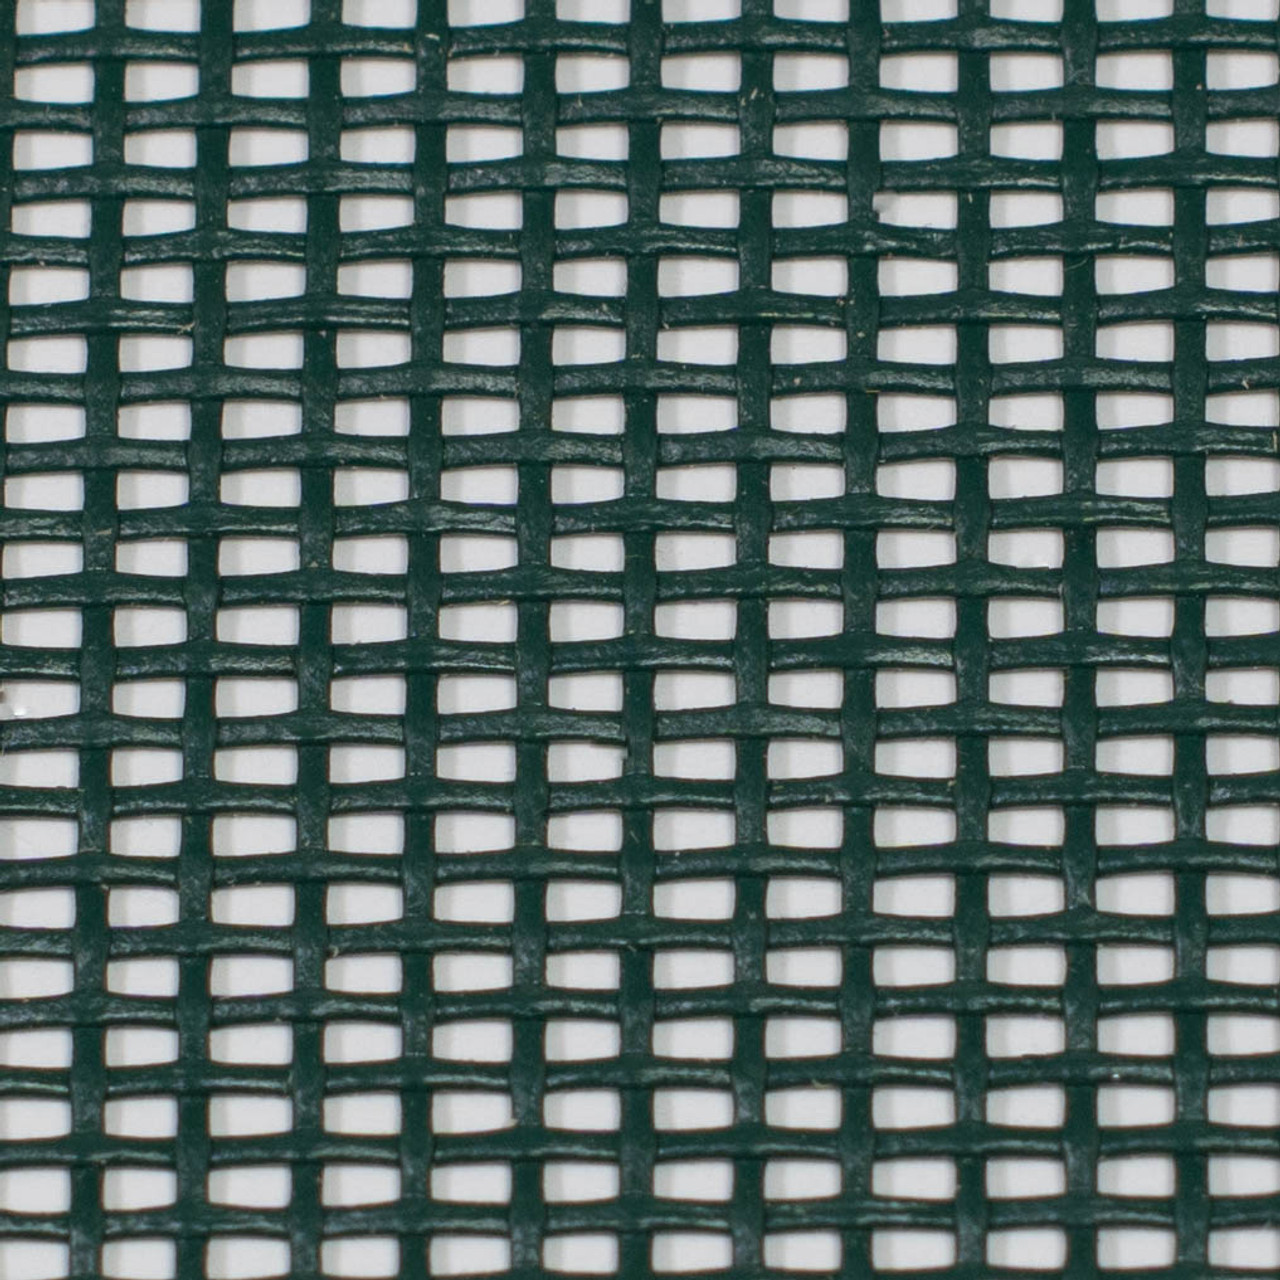 Forest Green Pet Screen 54 Inch x 25 Ft